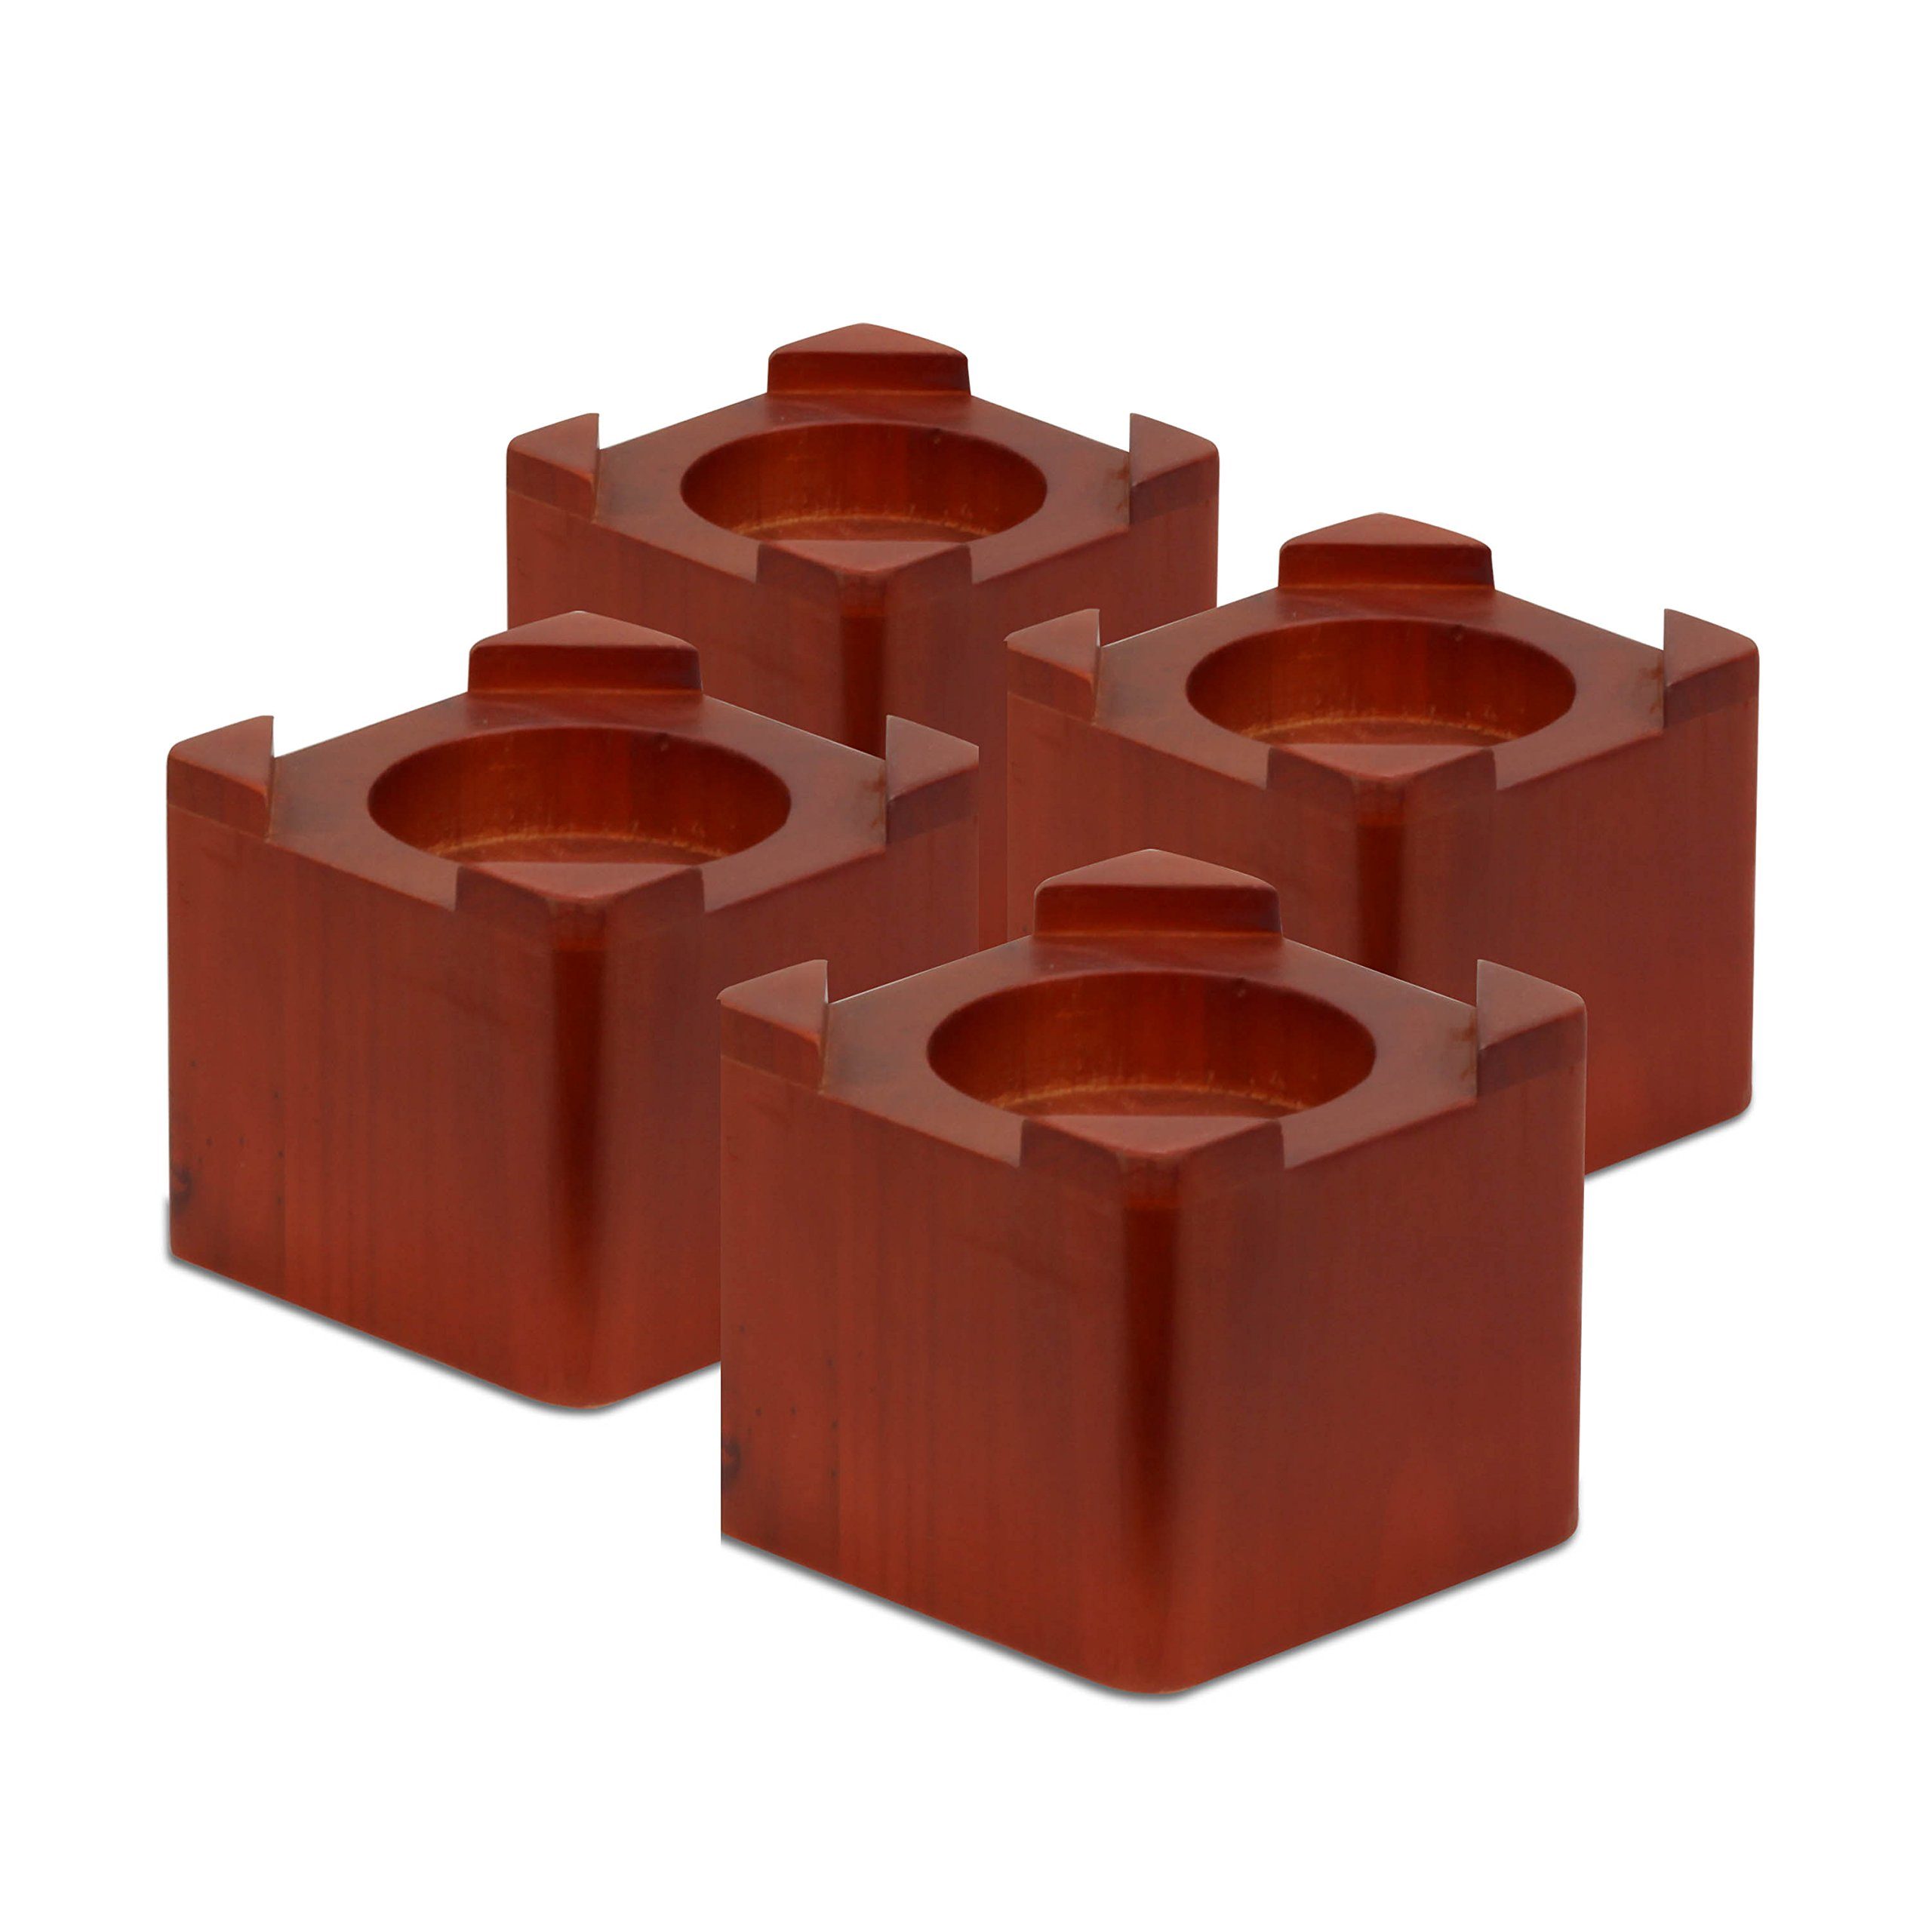 Honey-Can-Do STO-01151 Wood Bed Lifts, Cherry Finish, 4-Pack